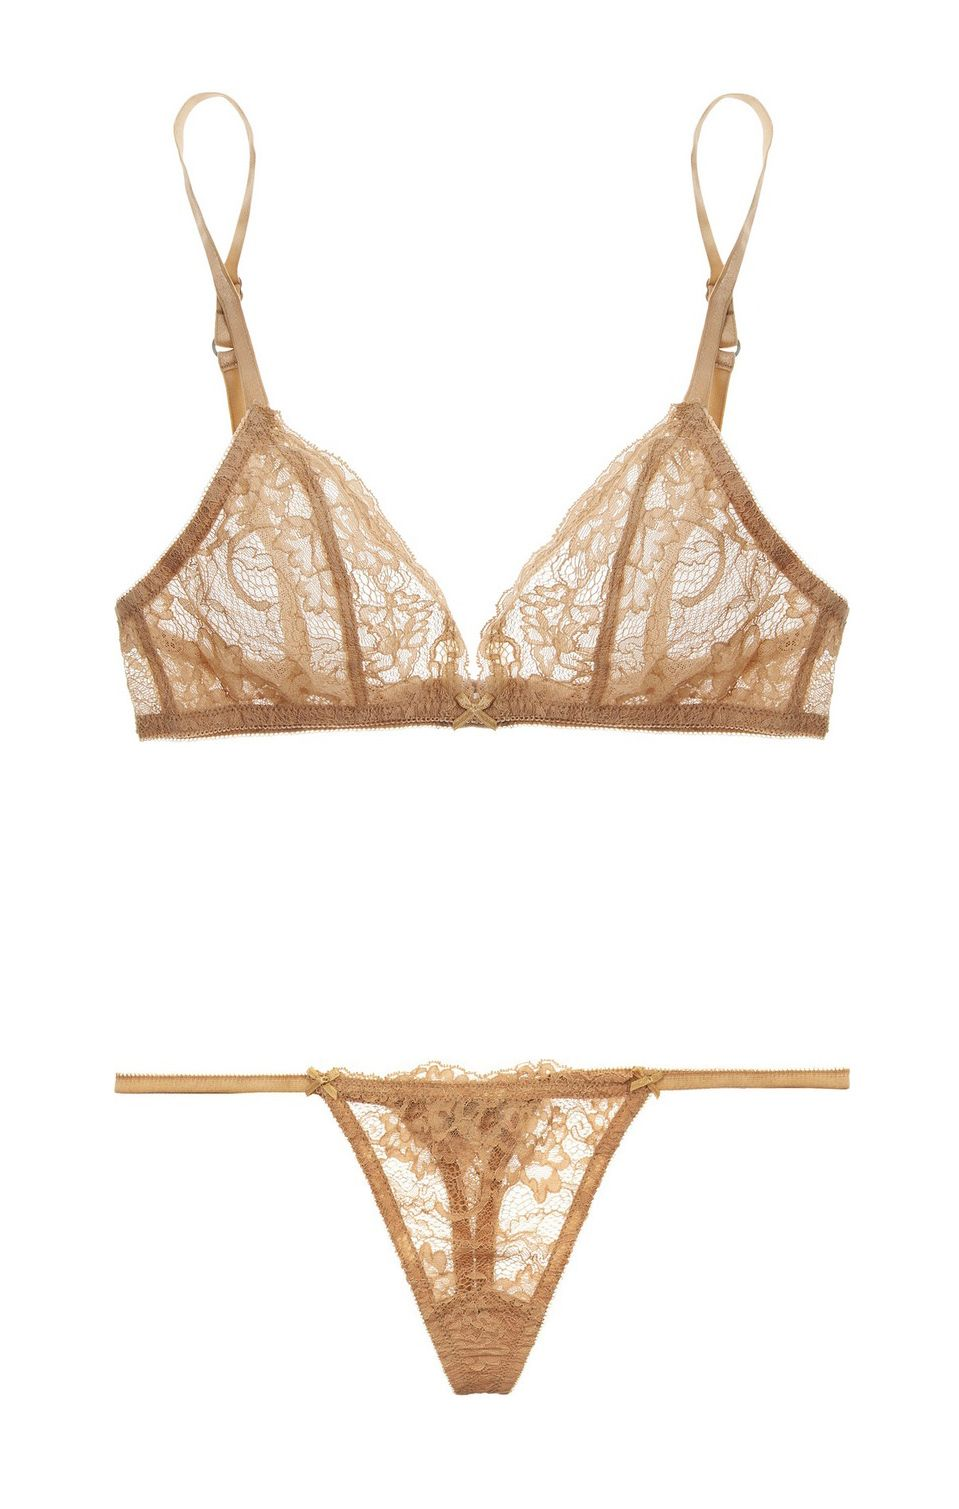 84a535ad5d Deborah Marquit - Giardino di Fiori Italian lace soft-cup bra and lace  thong in antique-beige